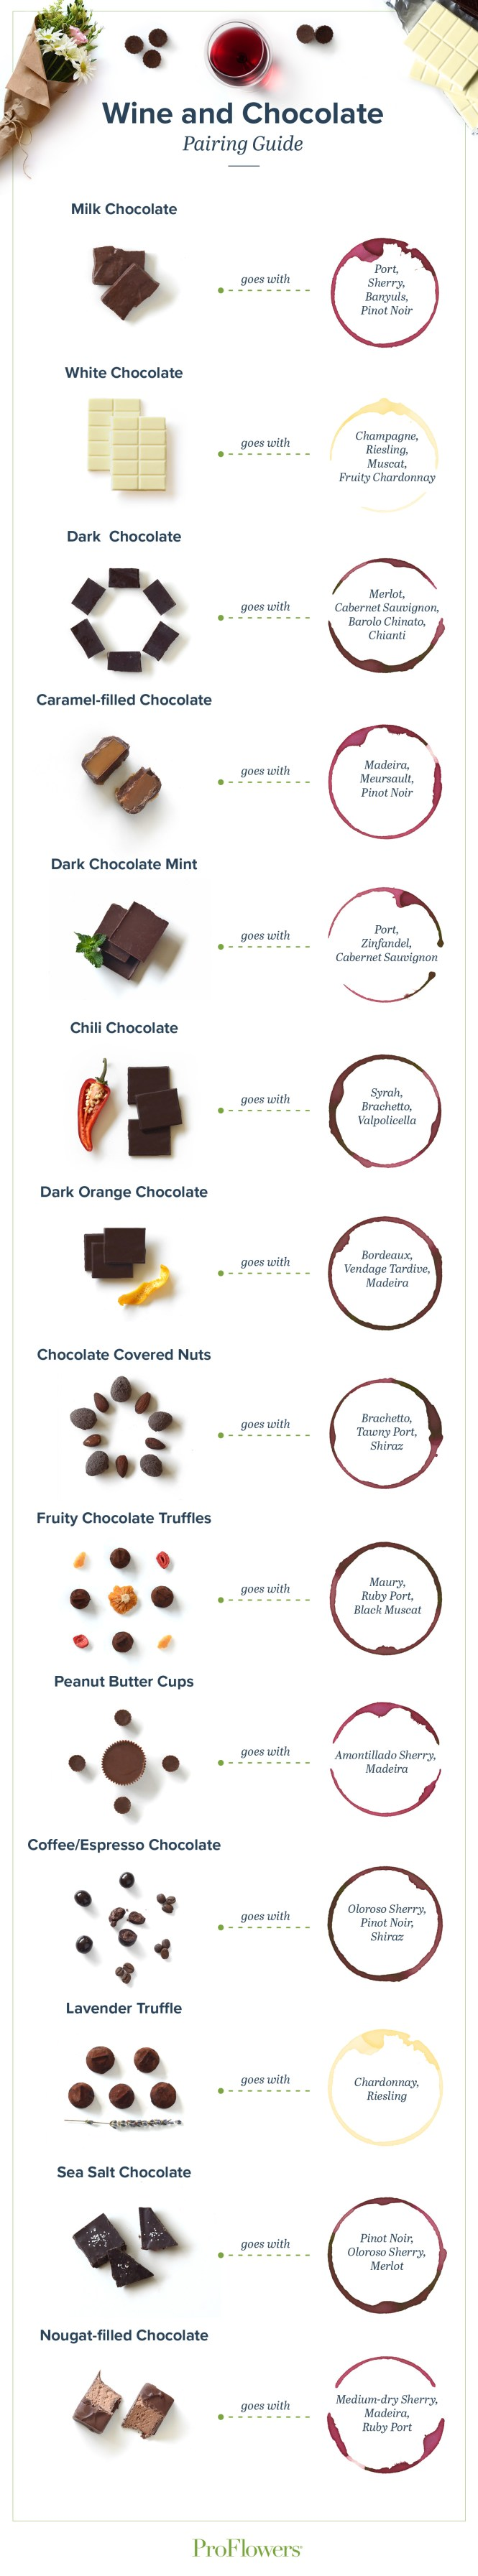 Chocolate and Wine Pairing - Wine and Mommy Time